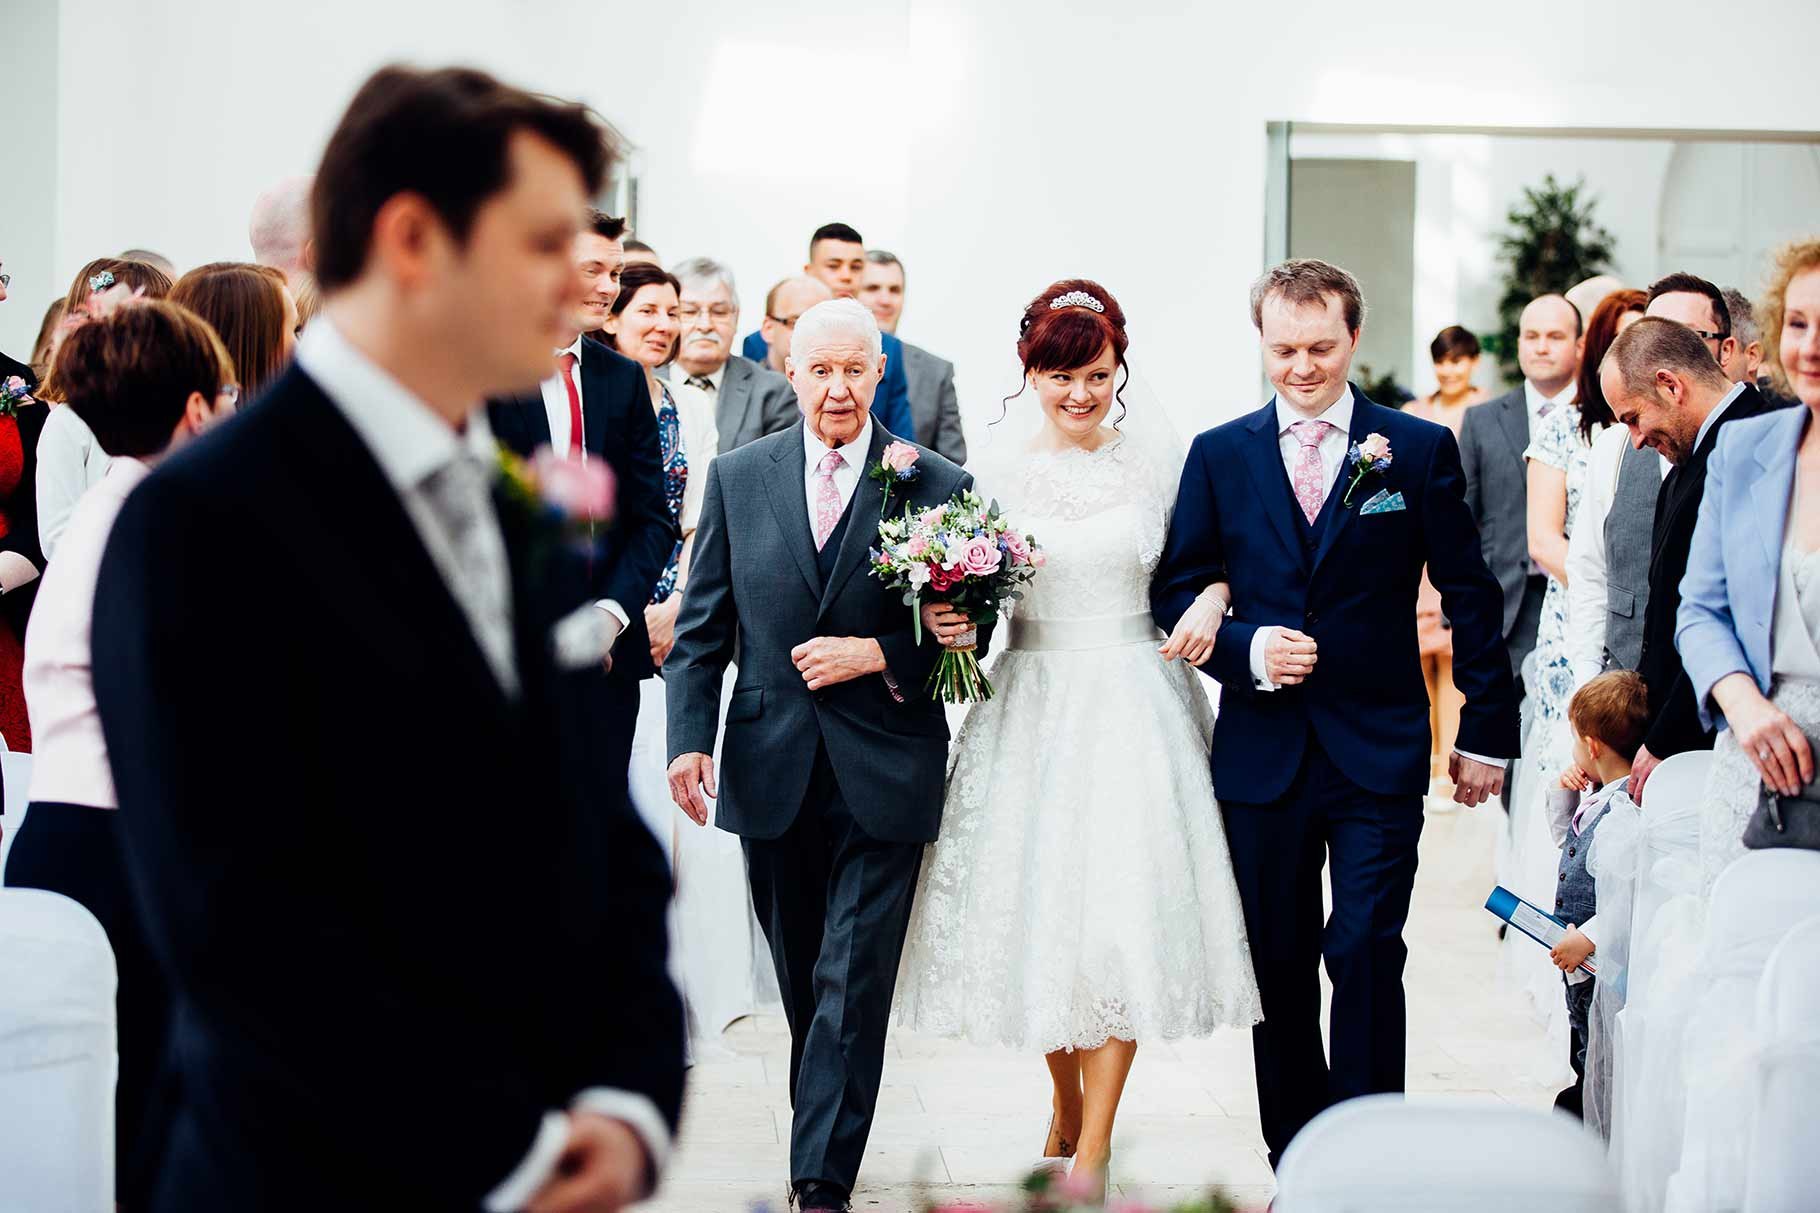 birmingham-wedding-photographer-john-charlton-004